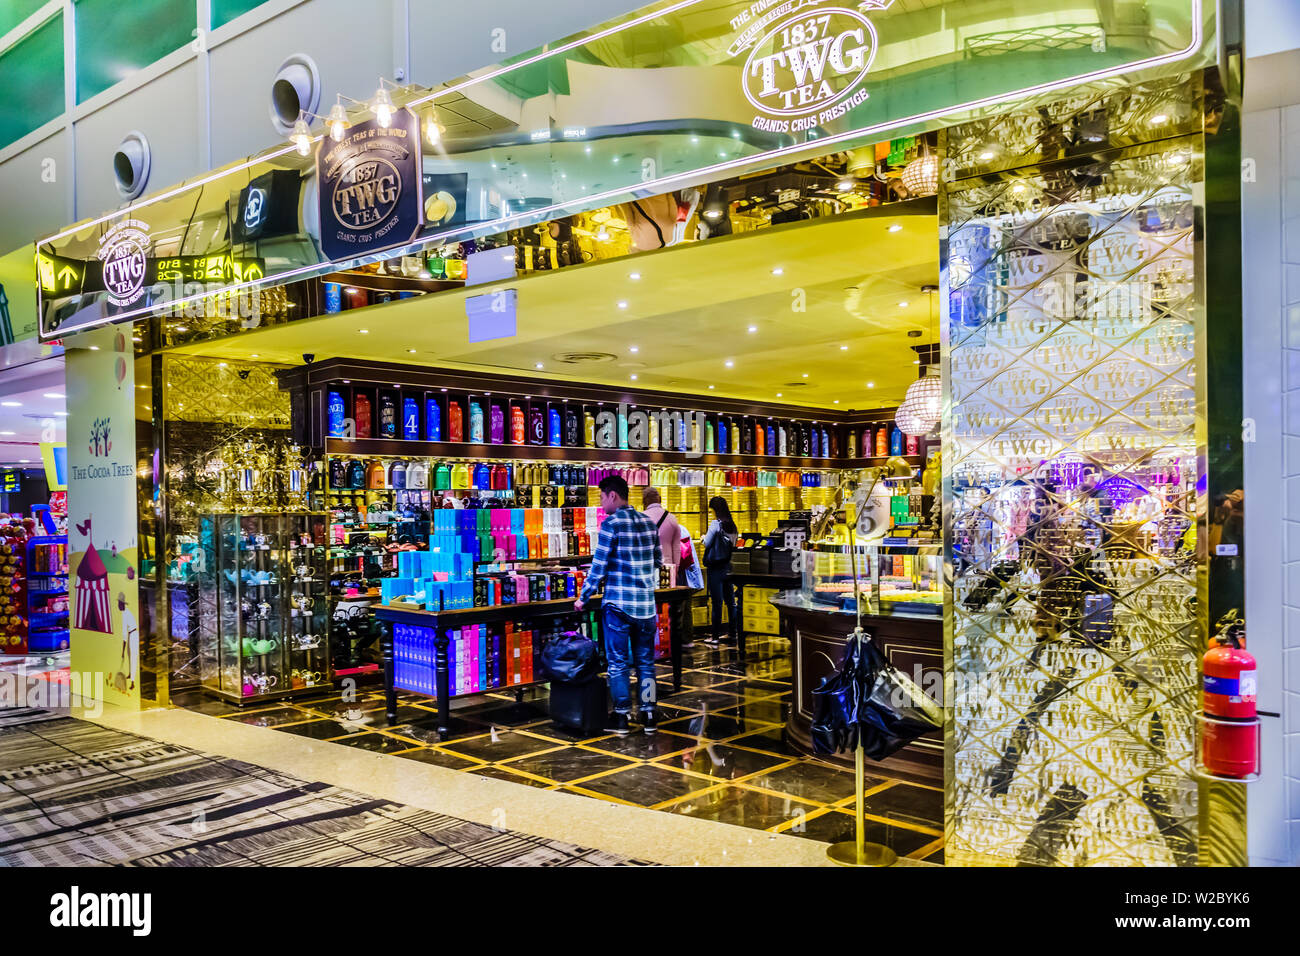 Singapore - May 8, 2019: Travellers moving and Shopping in Changi Airport,  Terminal 3, Singapore. - Stock Image